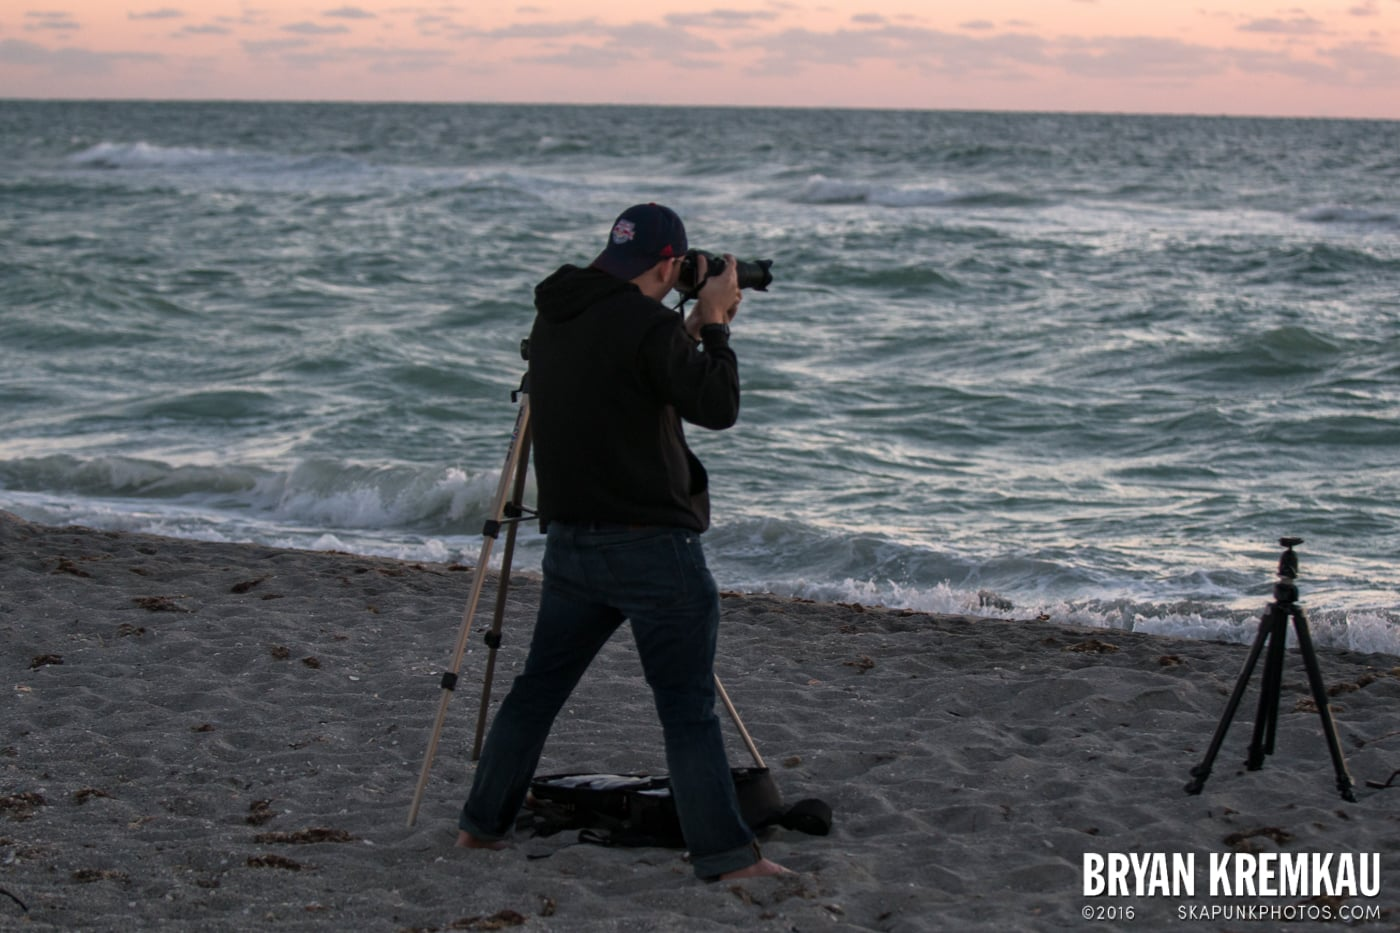 Sunsets, Astrophotography & Birds @ Venice, Florida - 10.25.14 - 11.5.14 (94)